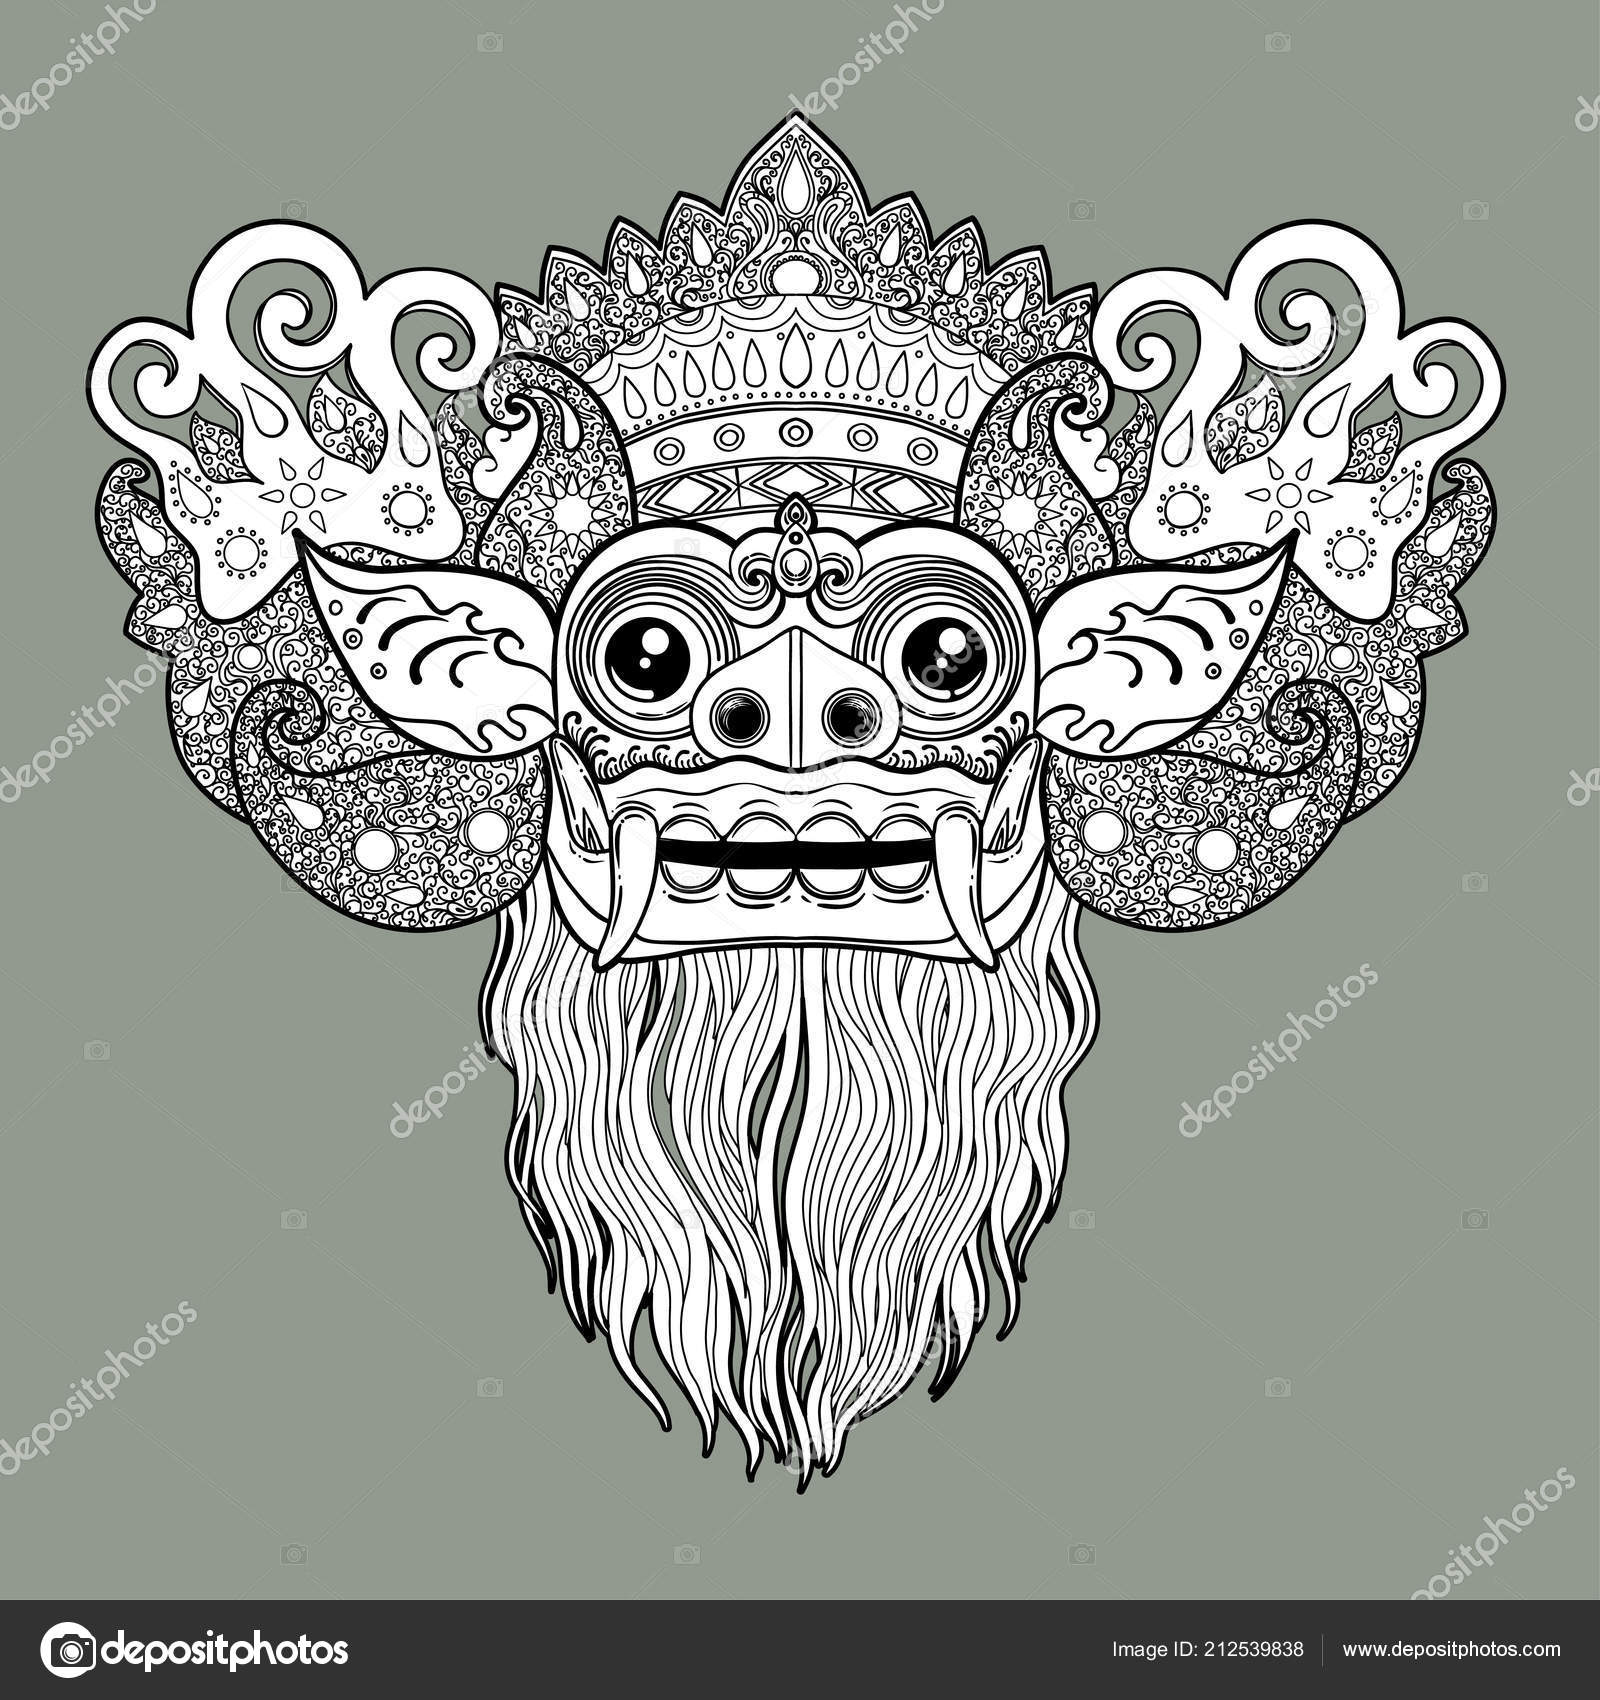 Bali Mask Tattoos Barong Traditional Ritual Balinese Mask